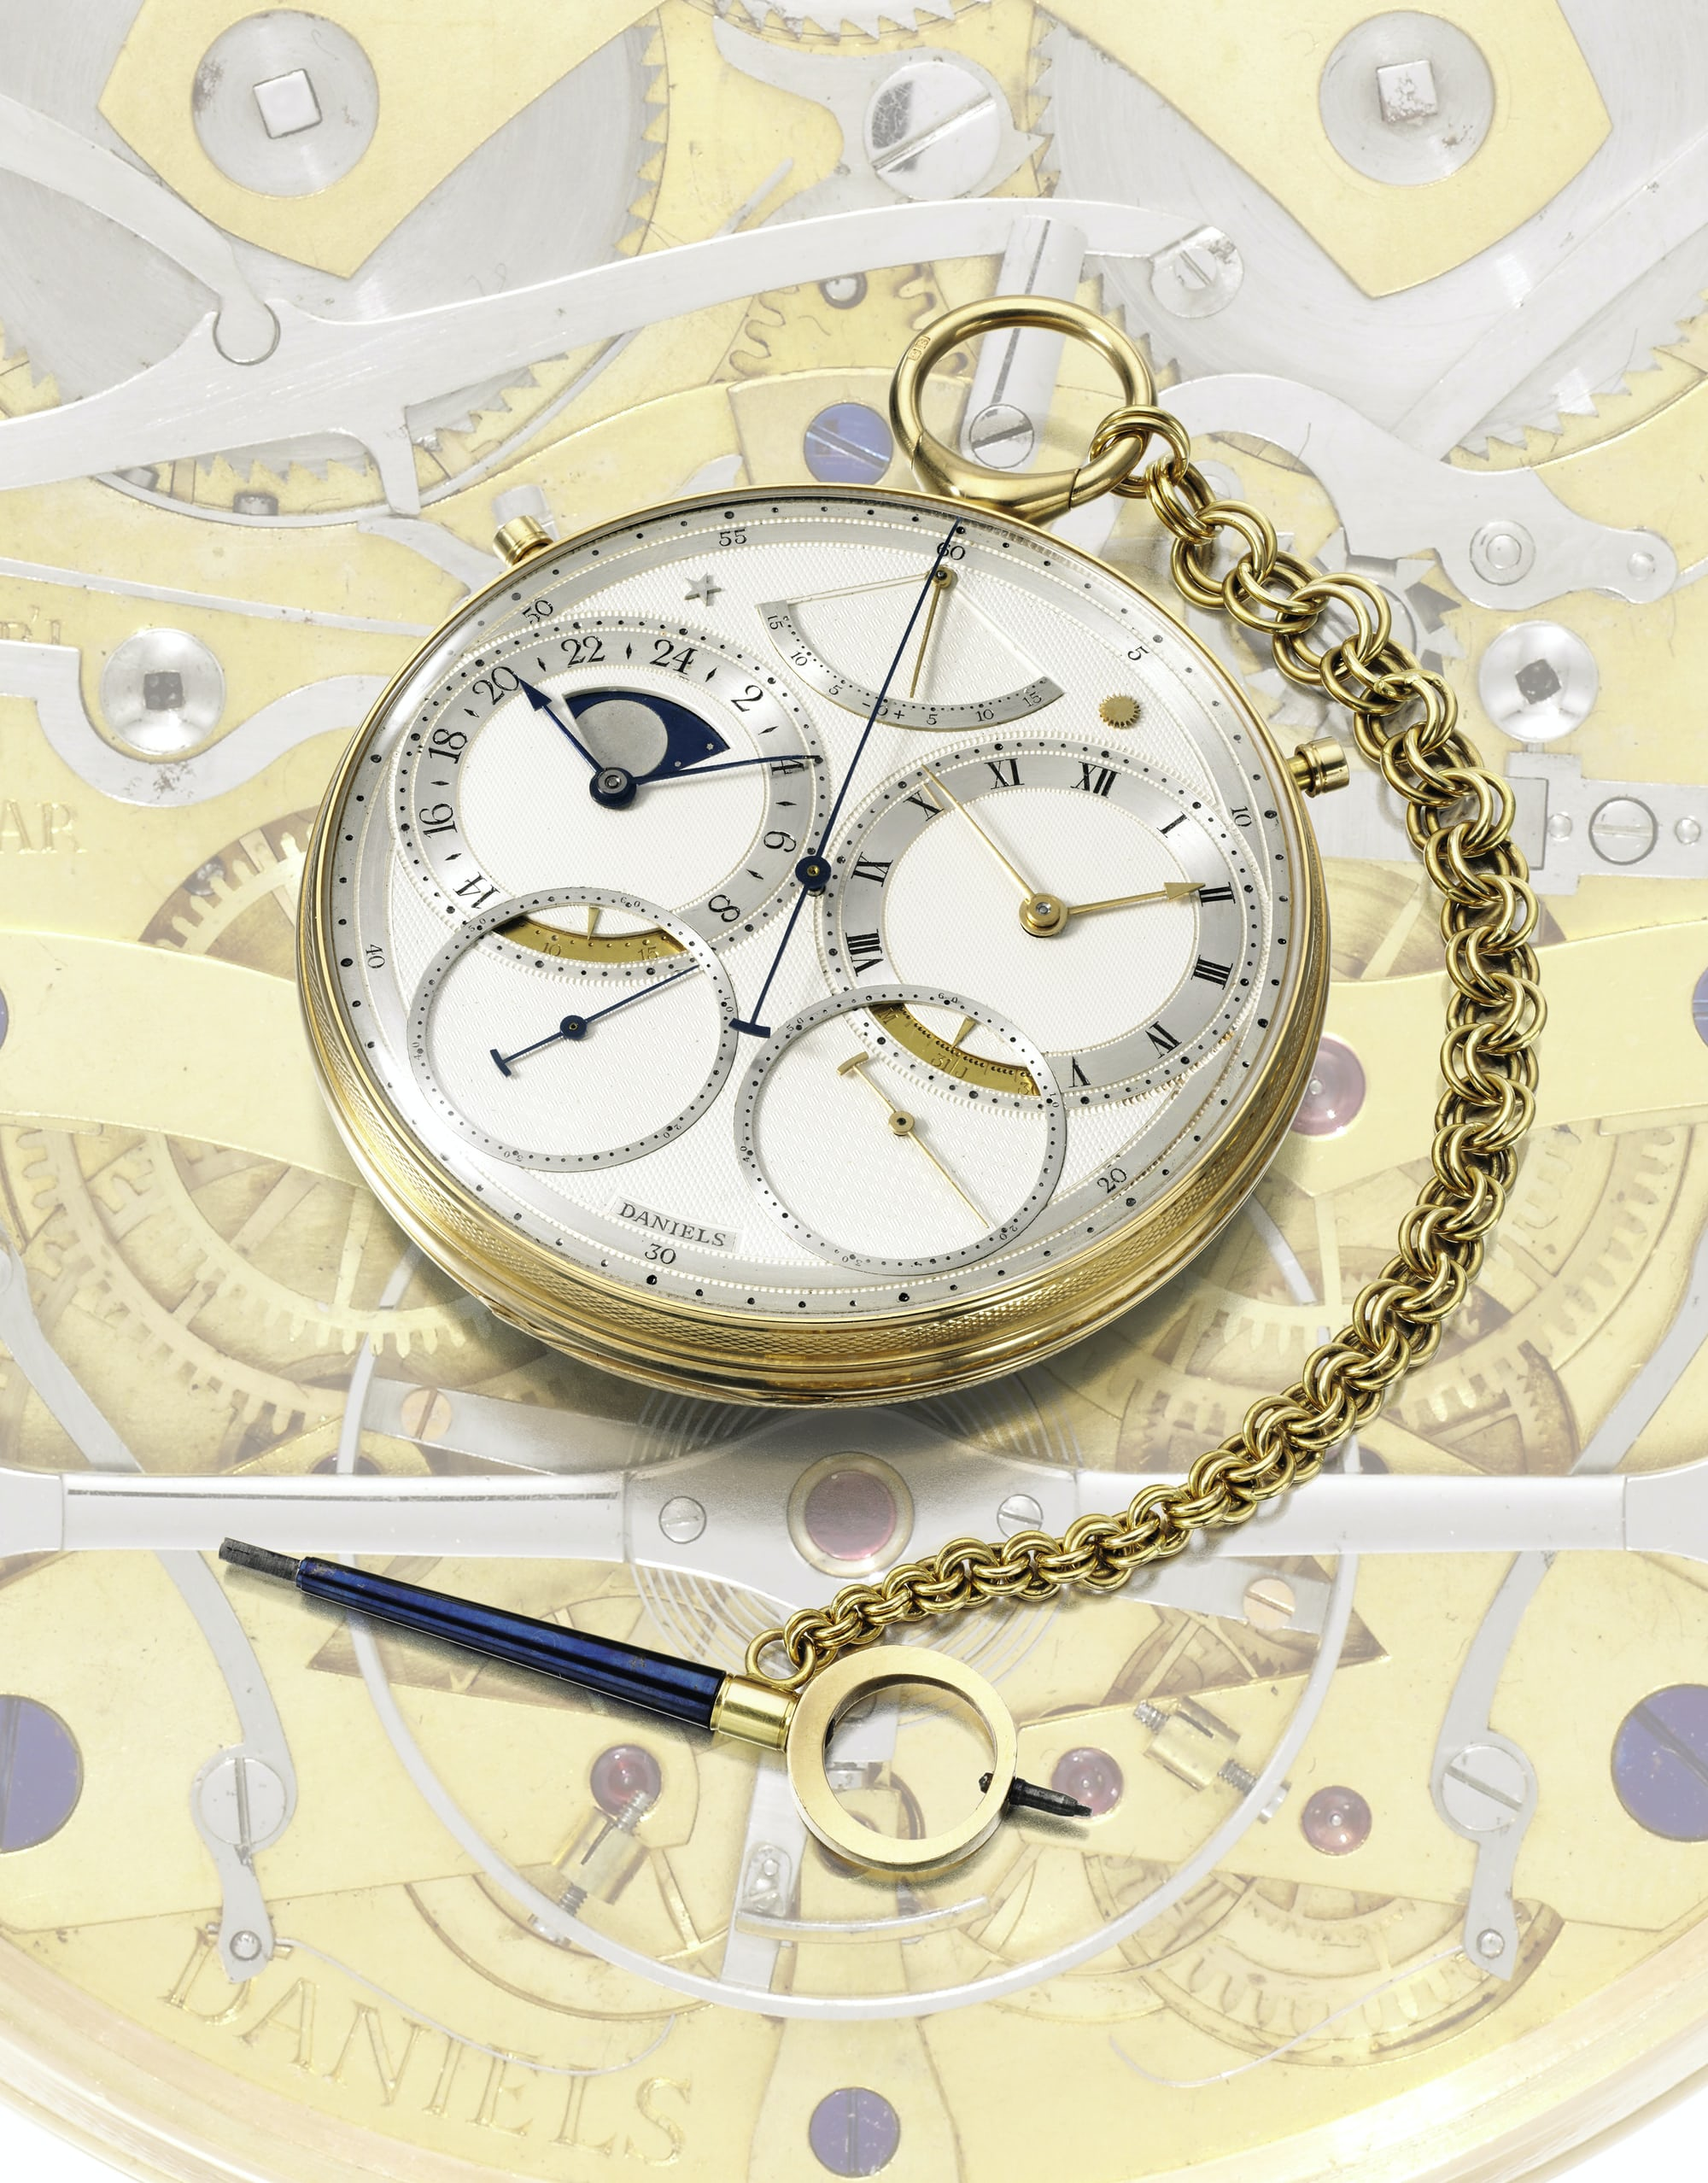 auction report: sotheby's to offer the daniels 'space traveller' watch, september 19th in london Auction Report: Sotheby's To Offer The Daniels 'Space Traveller' Watch, September 19th In London Daniels   SPACE TRAVELLERS WATCH